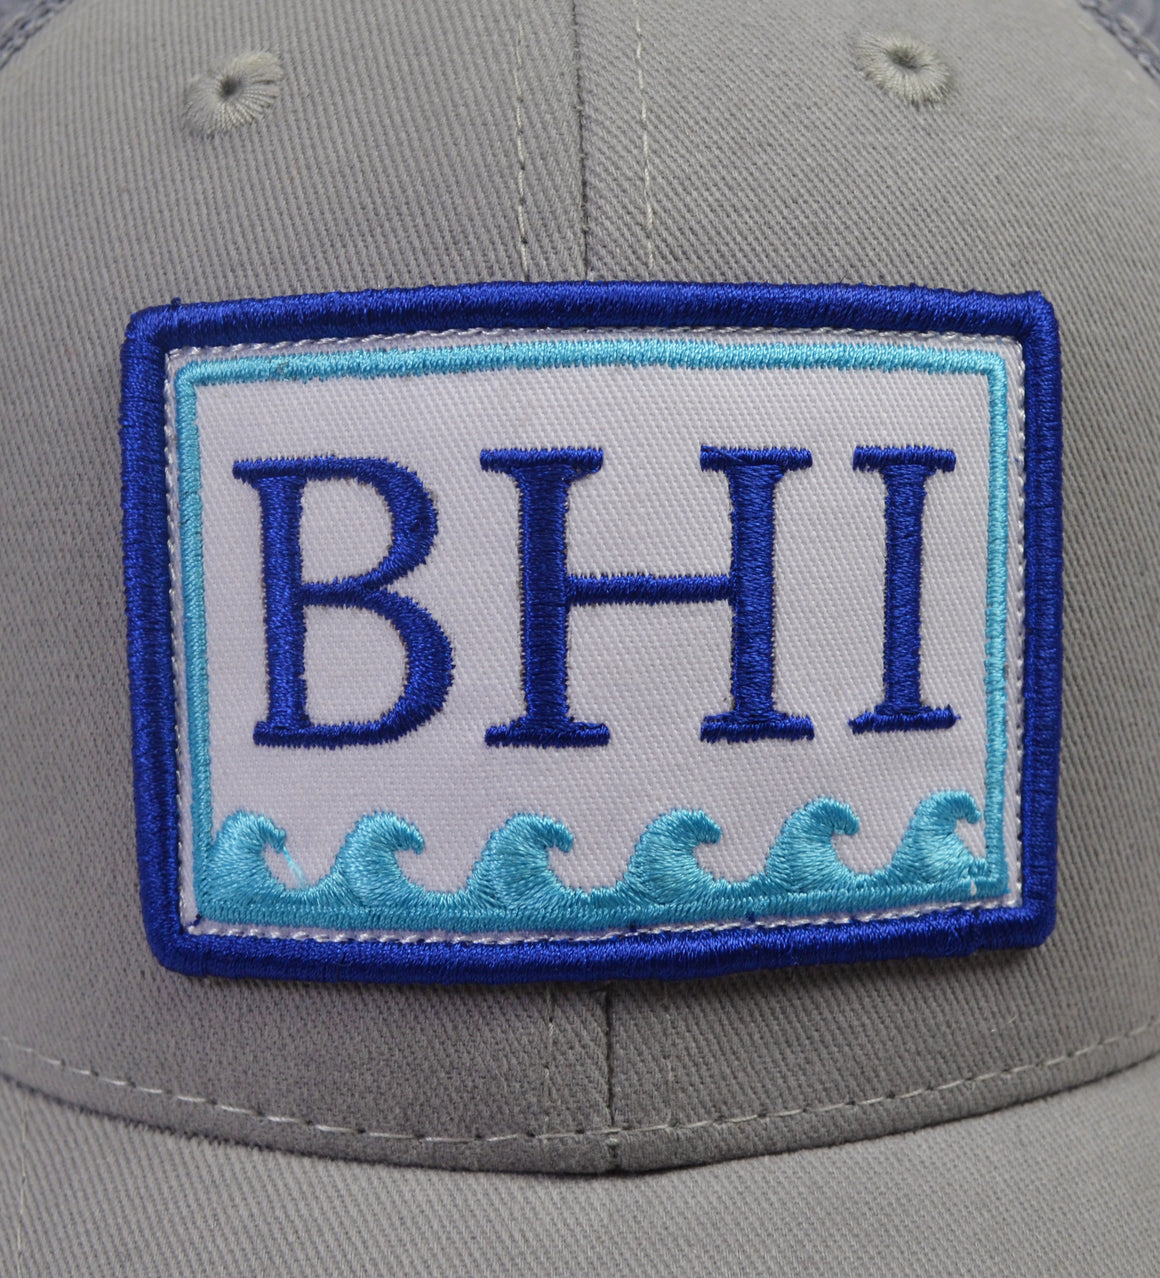 BHI Trucker Hat - Grey